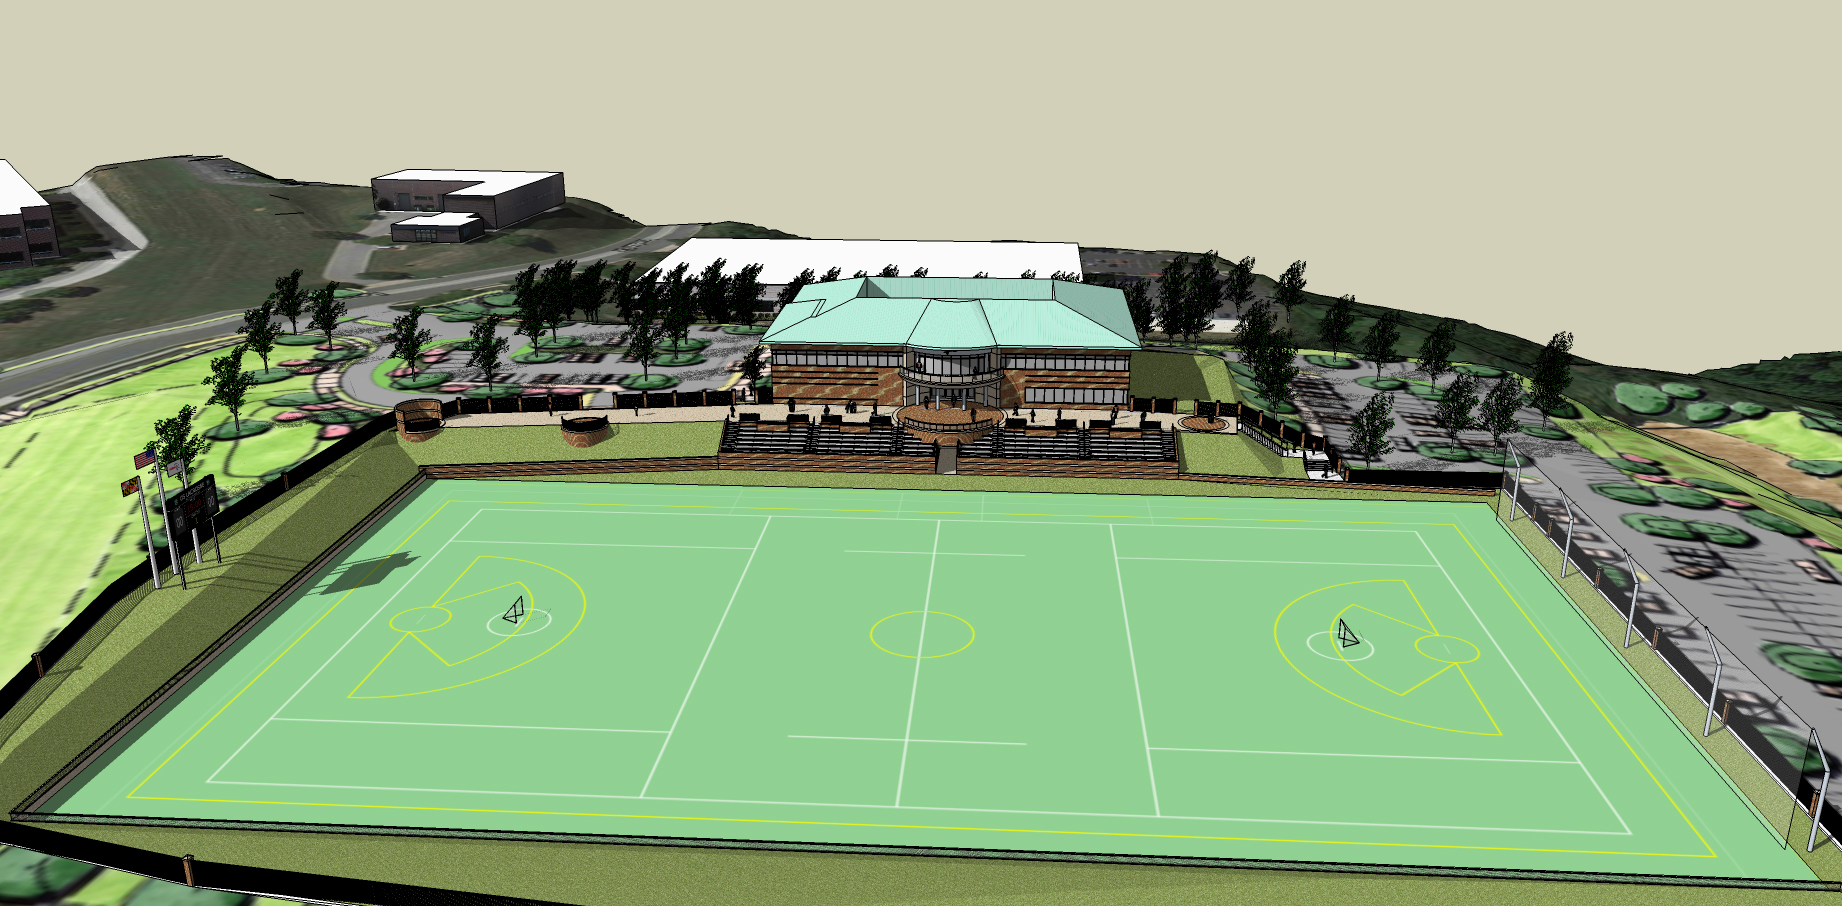 Lacrosse state of the art new Headquarters in Sparks, MD. Full size Lacrosse field for the USA National Mens and Women's teams. GreenFields Turf to be installed.